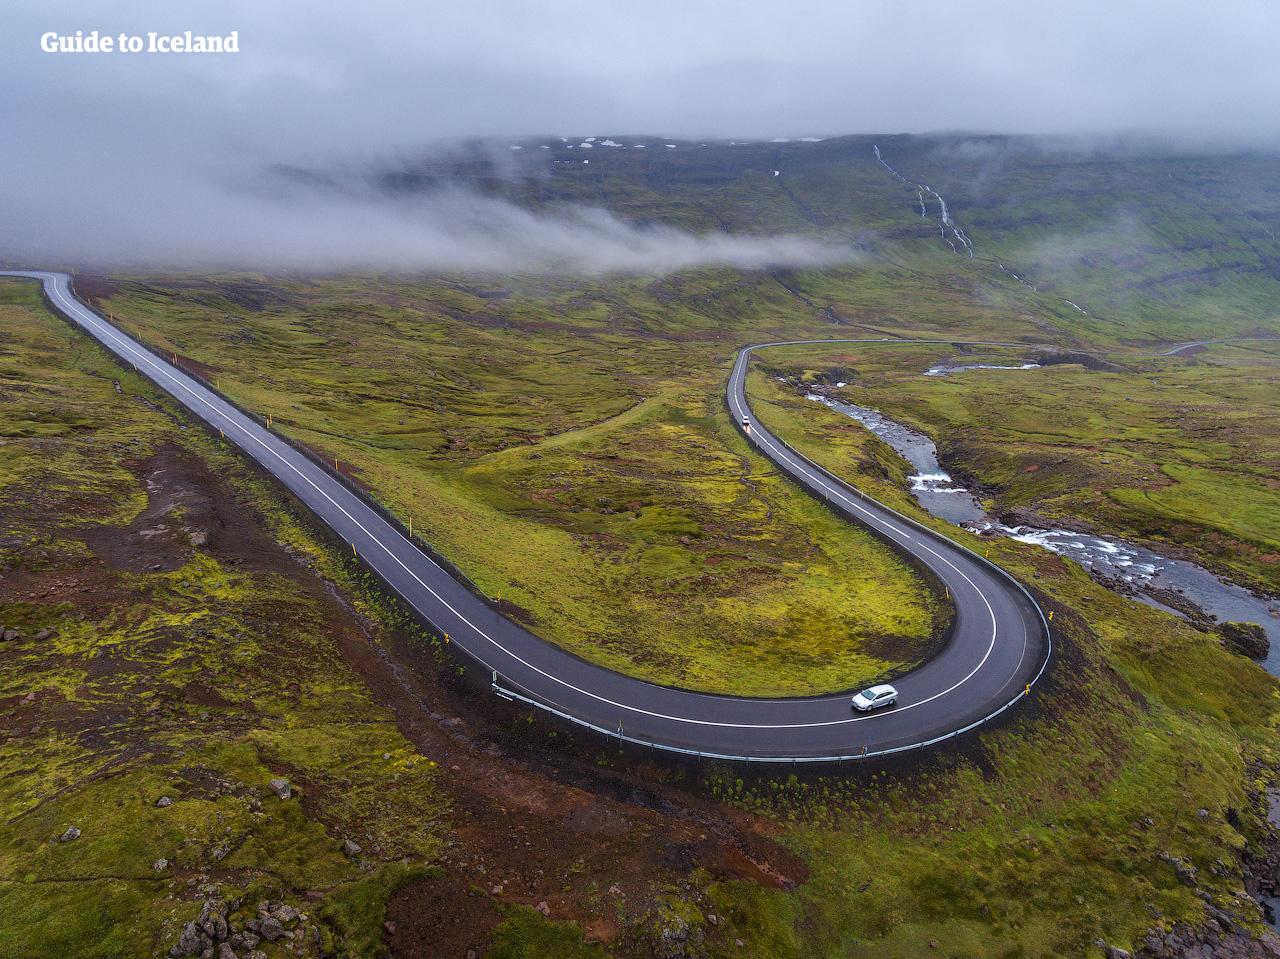 A winding road in the east of Iceland.